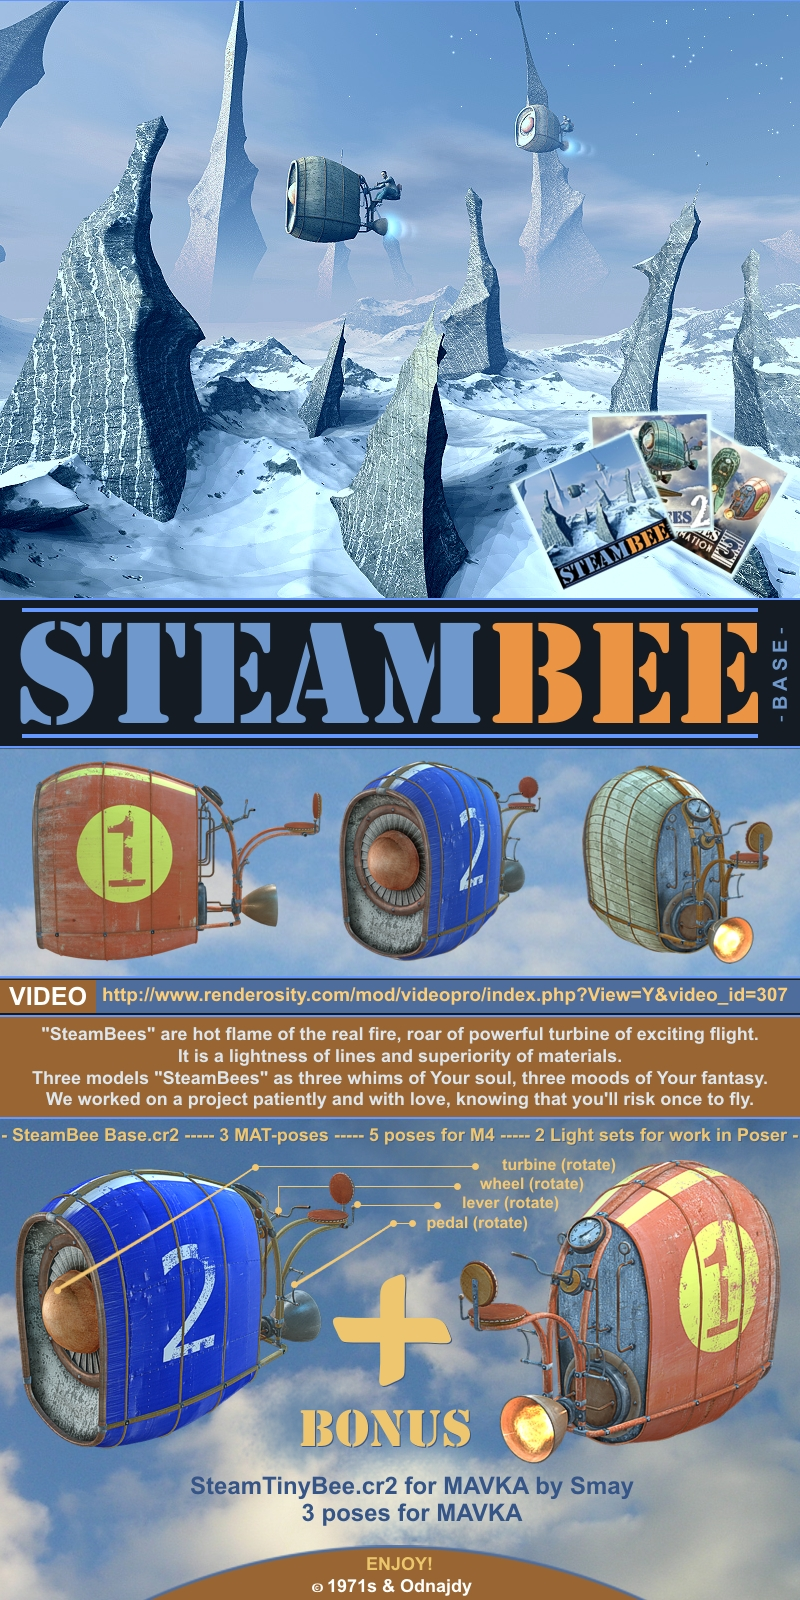 SteamBee